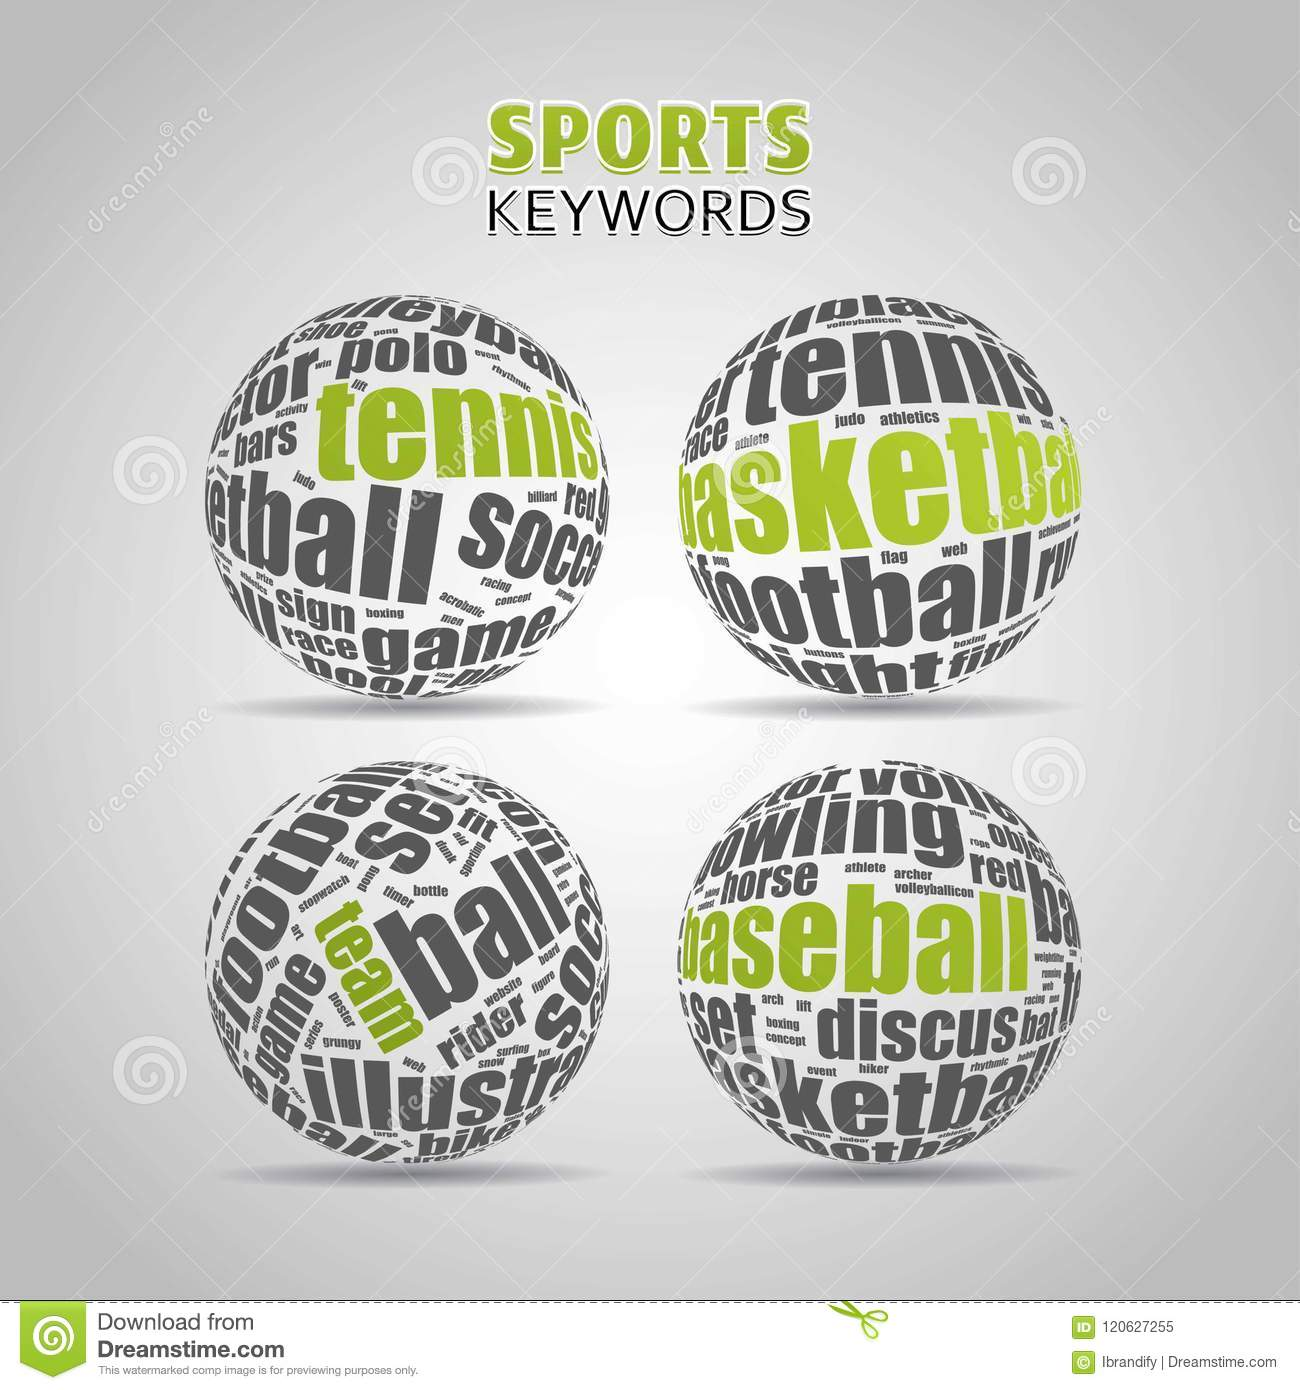 Popular Medical Terms in a Ball shape